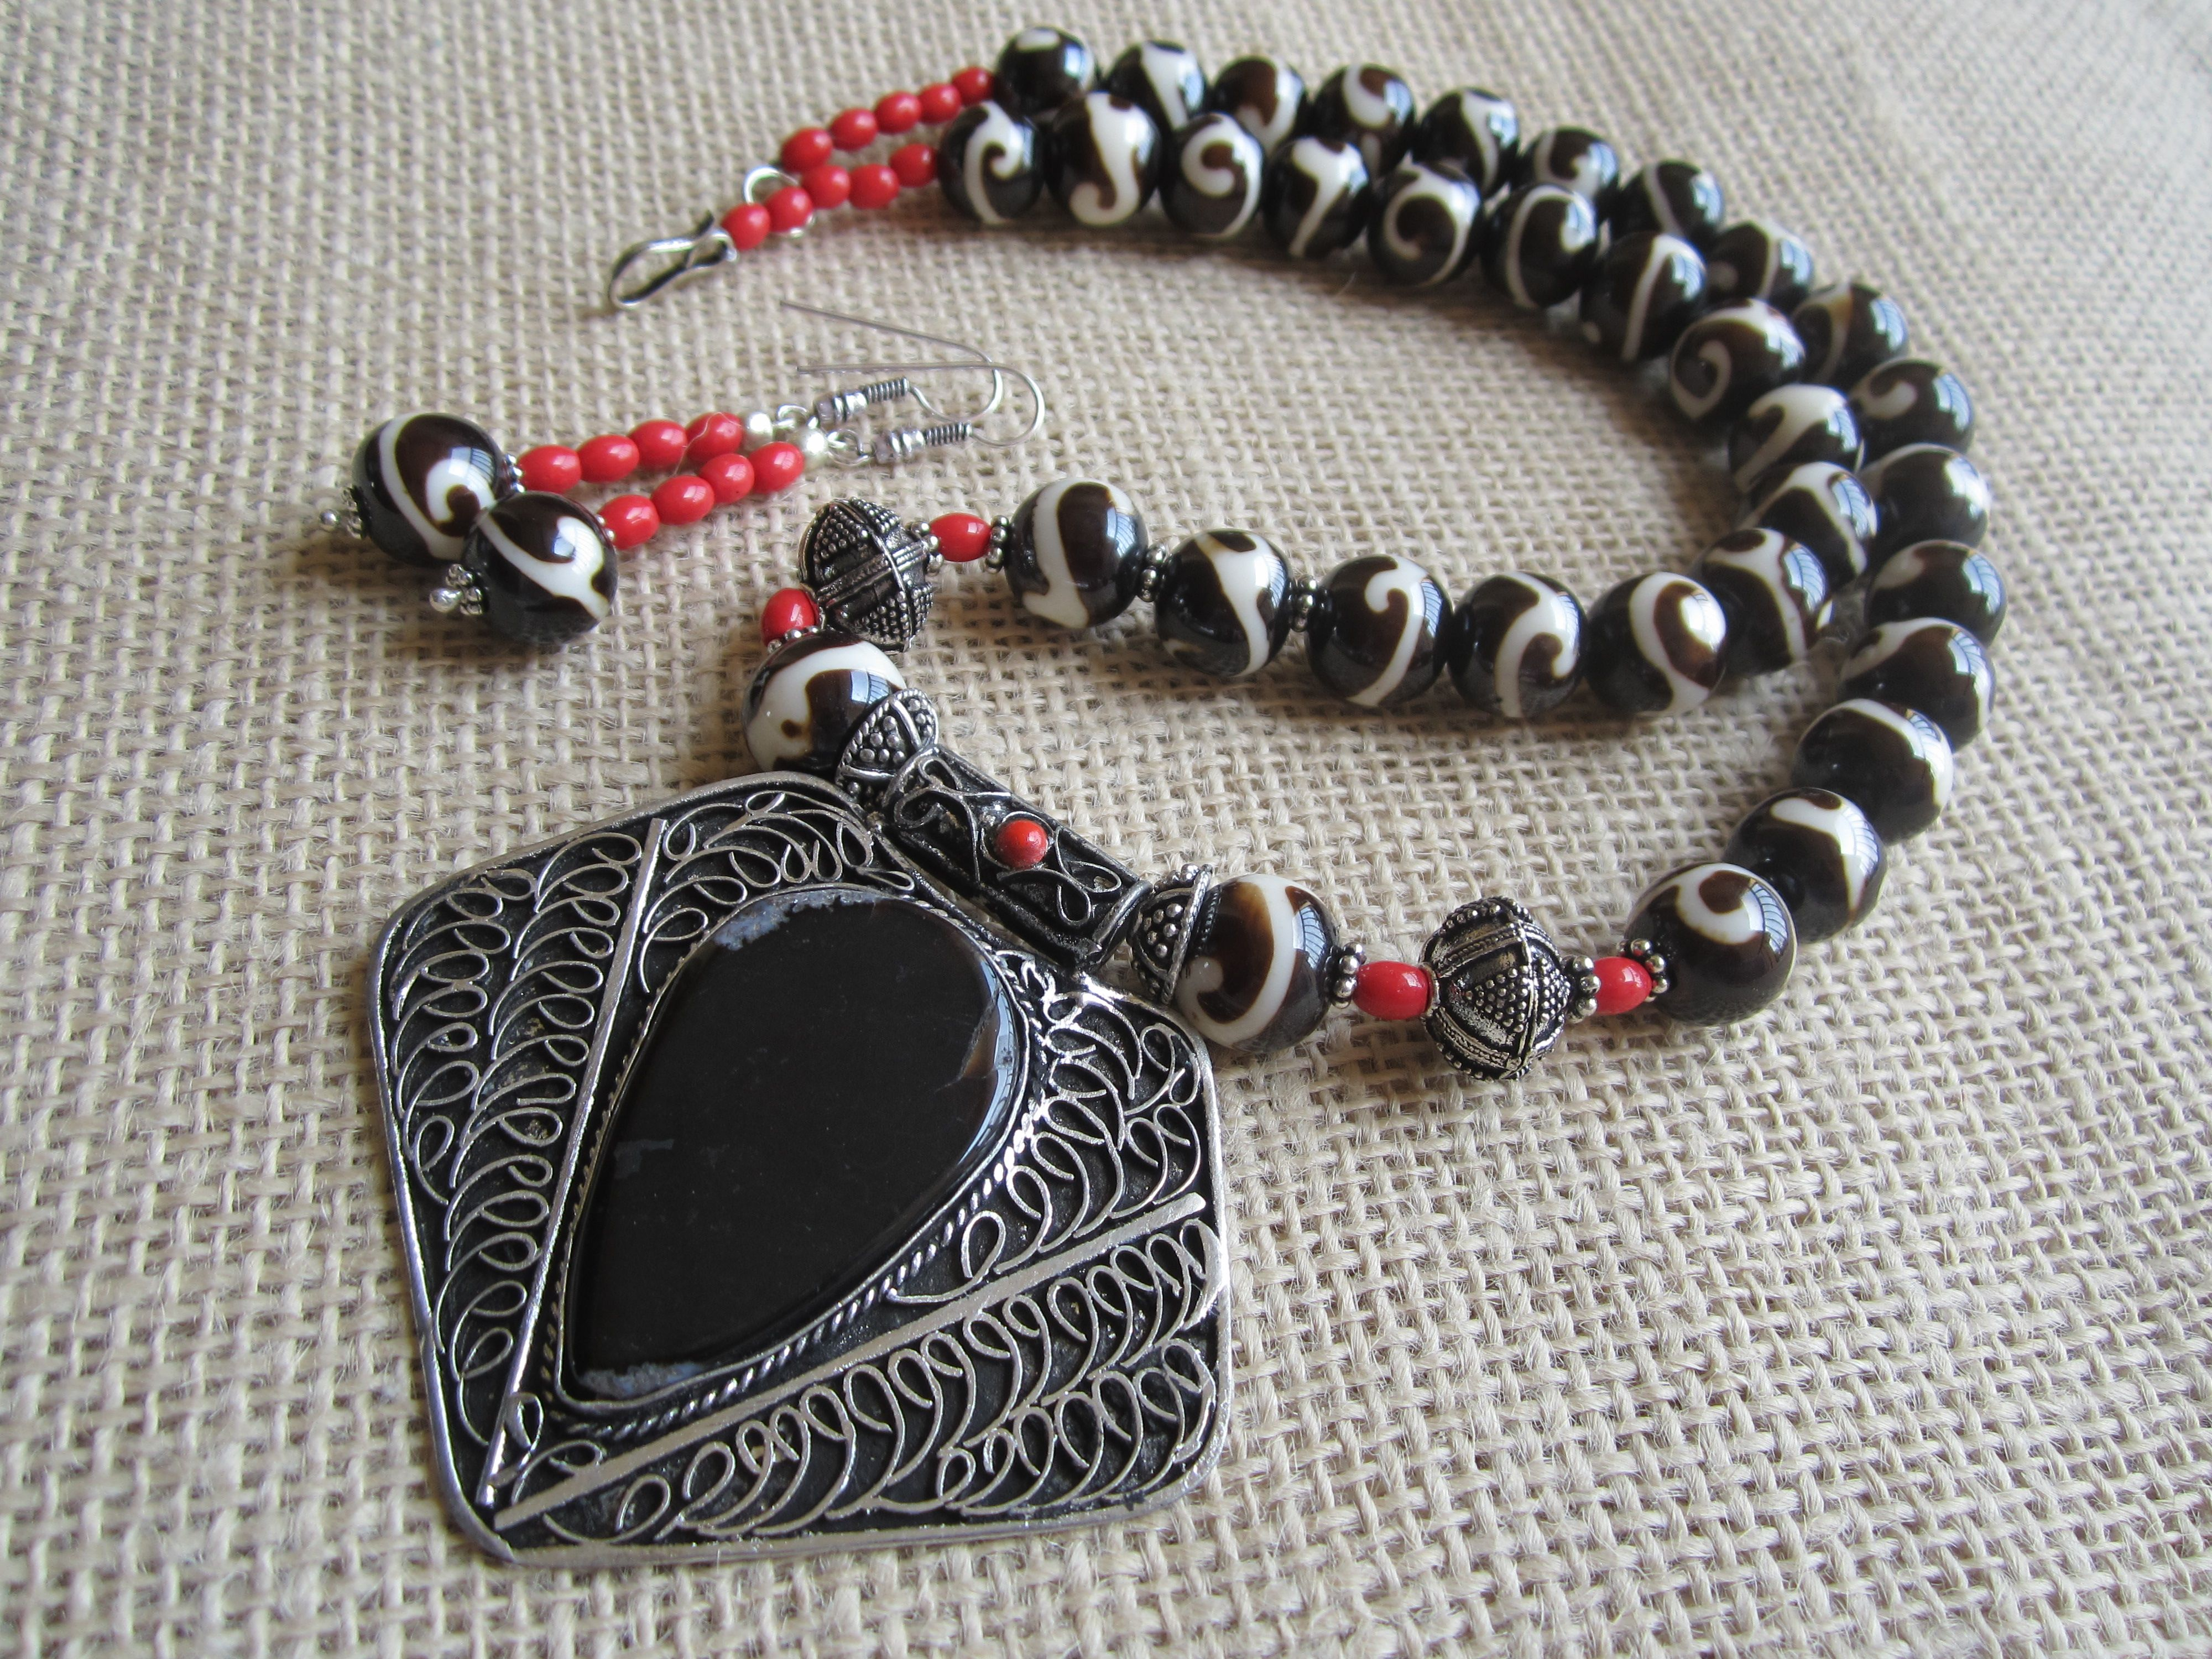 Hand Crafted Oxidized Necklace by Nnazaquat.